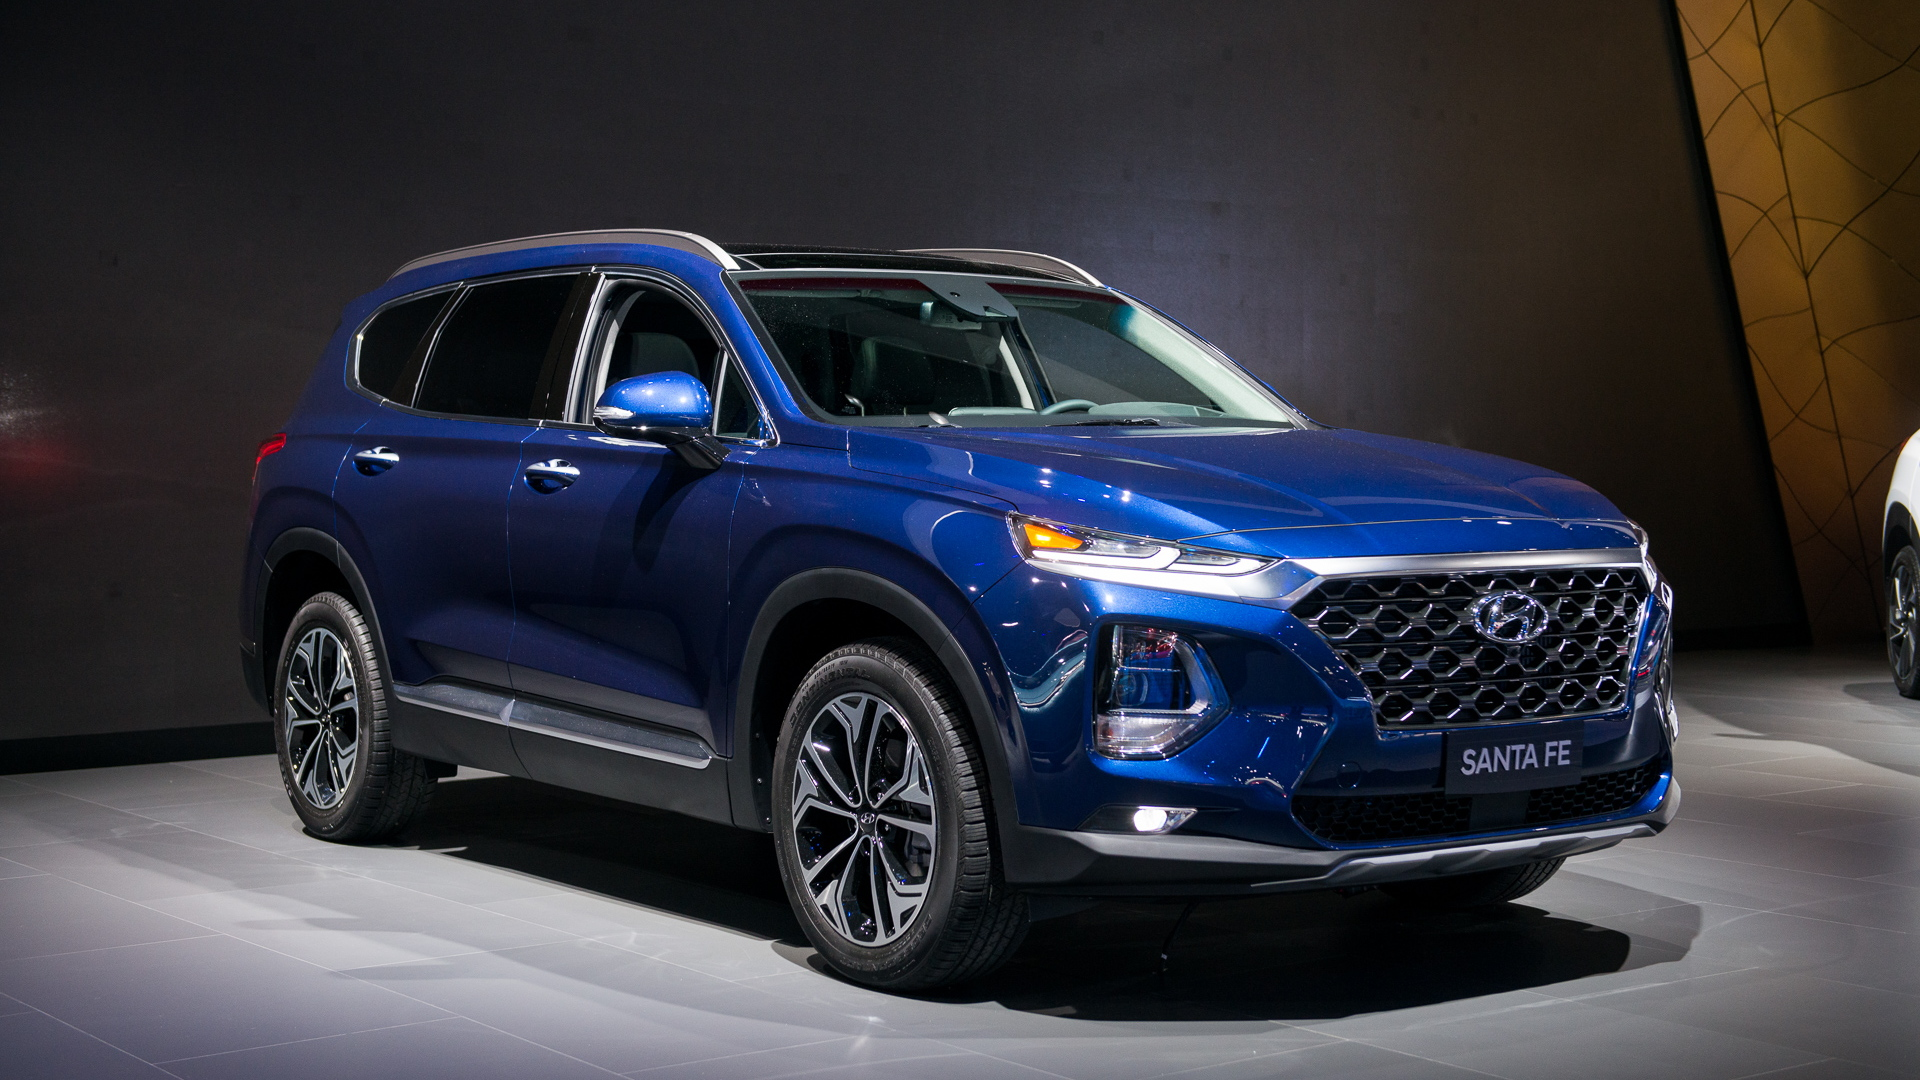 2019 Hyundai Santa Fe launched with diesel